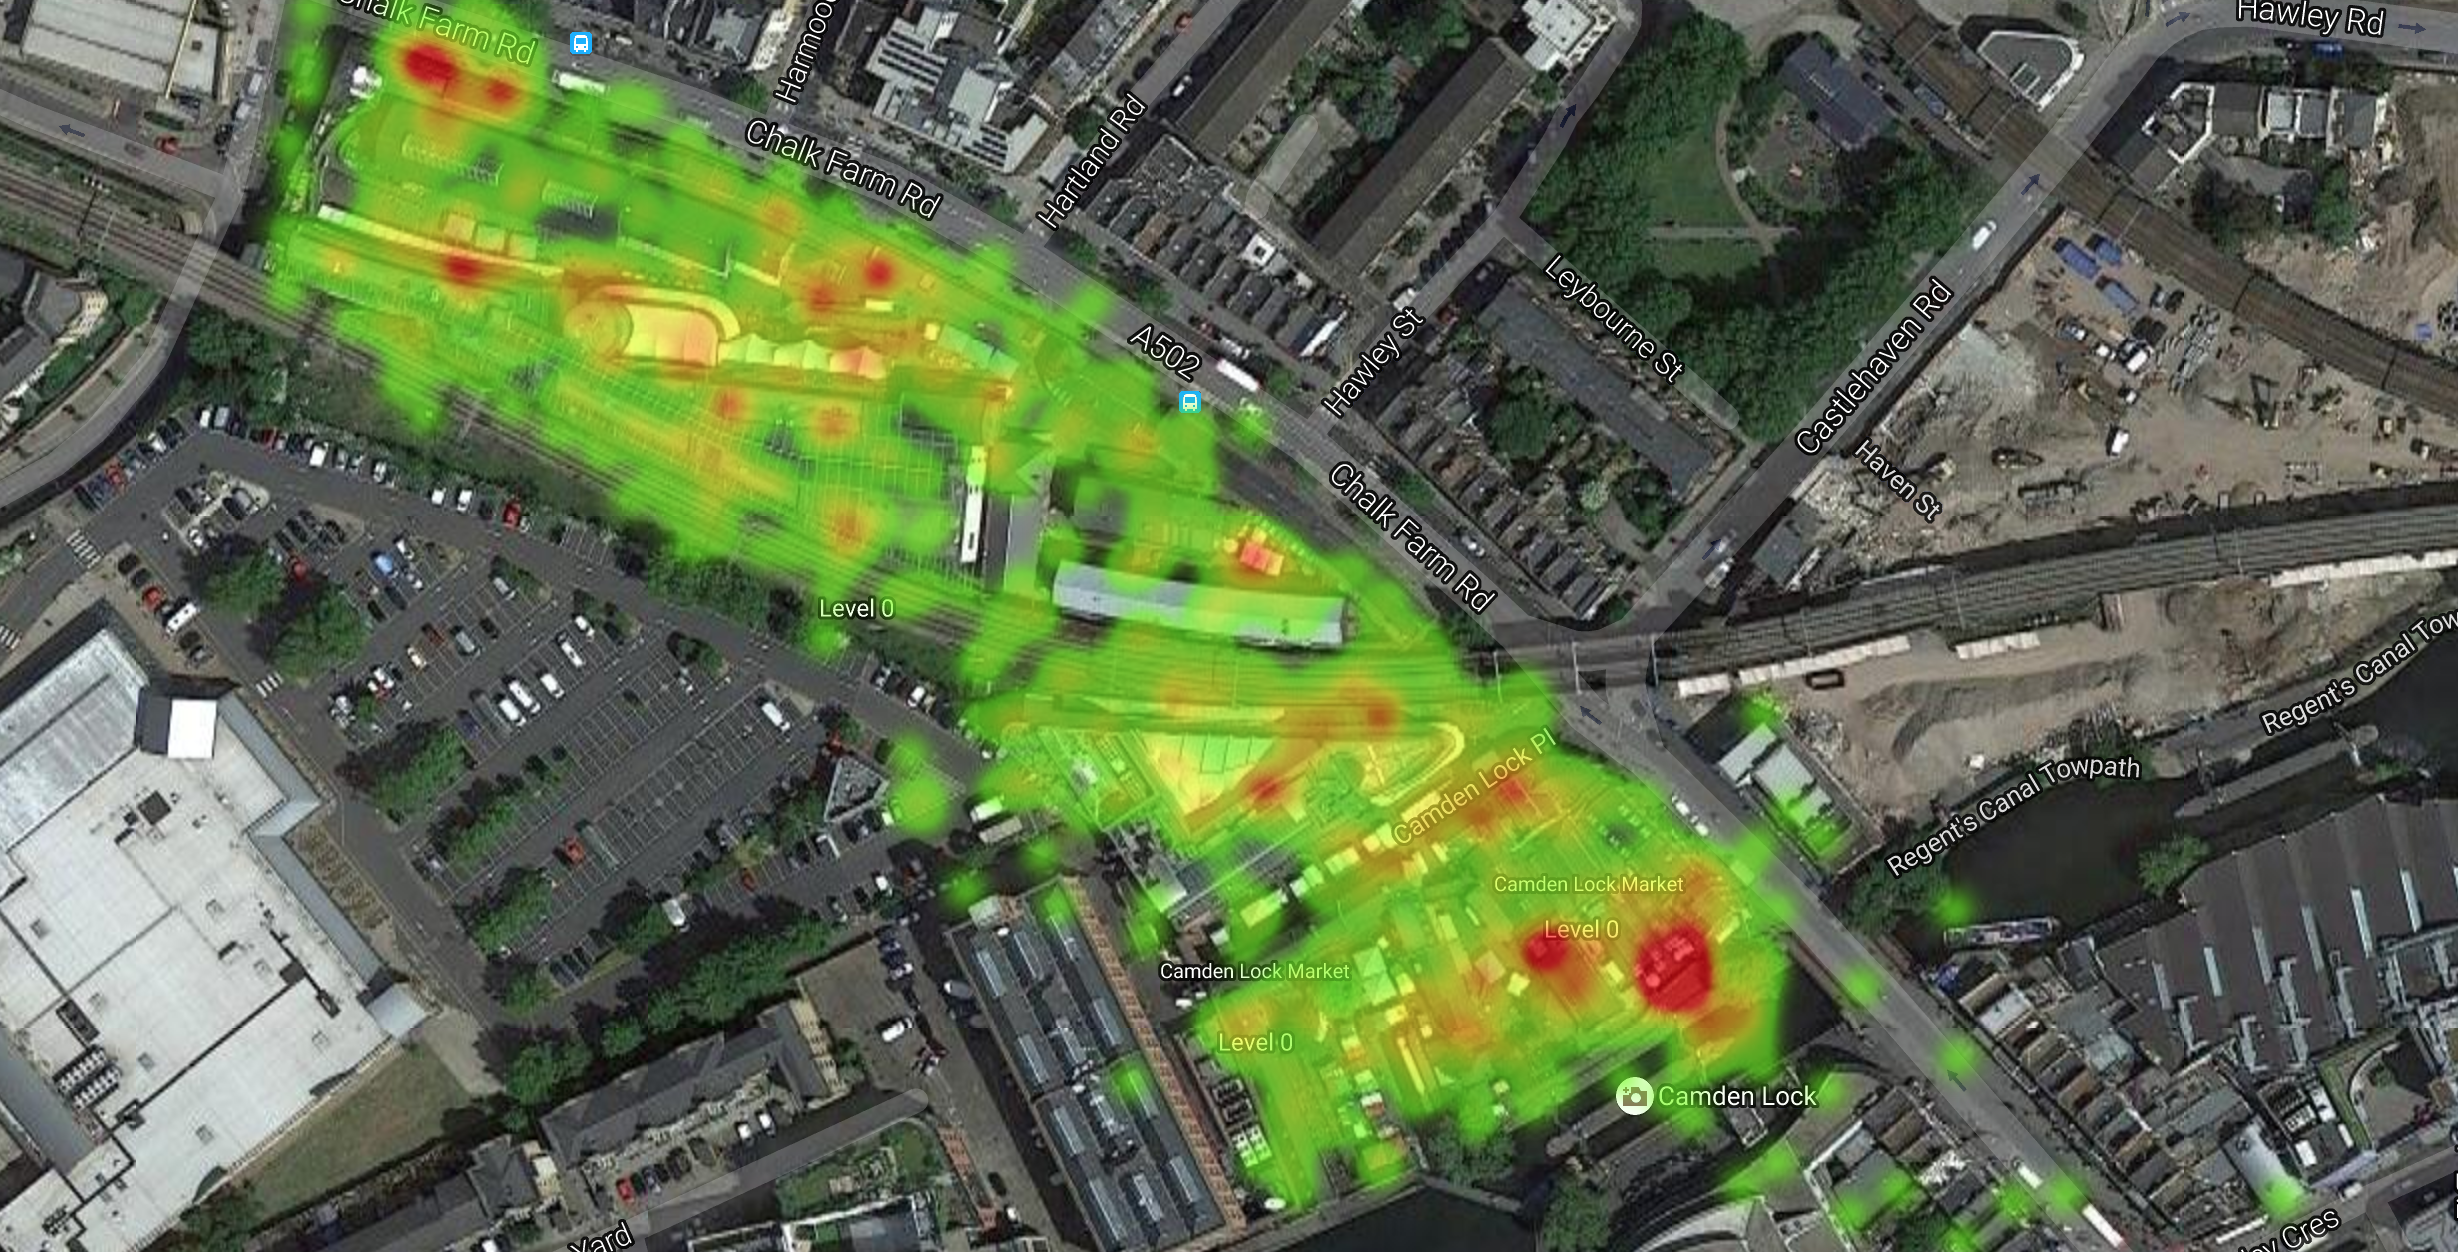 Camden Market launches social Wi-Fi system to track footfall